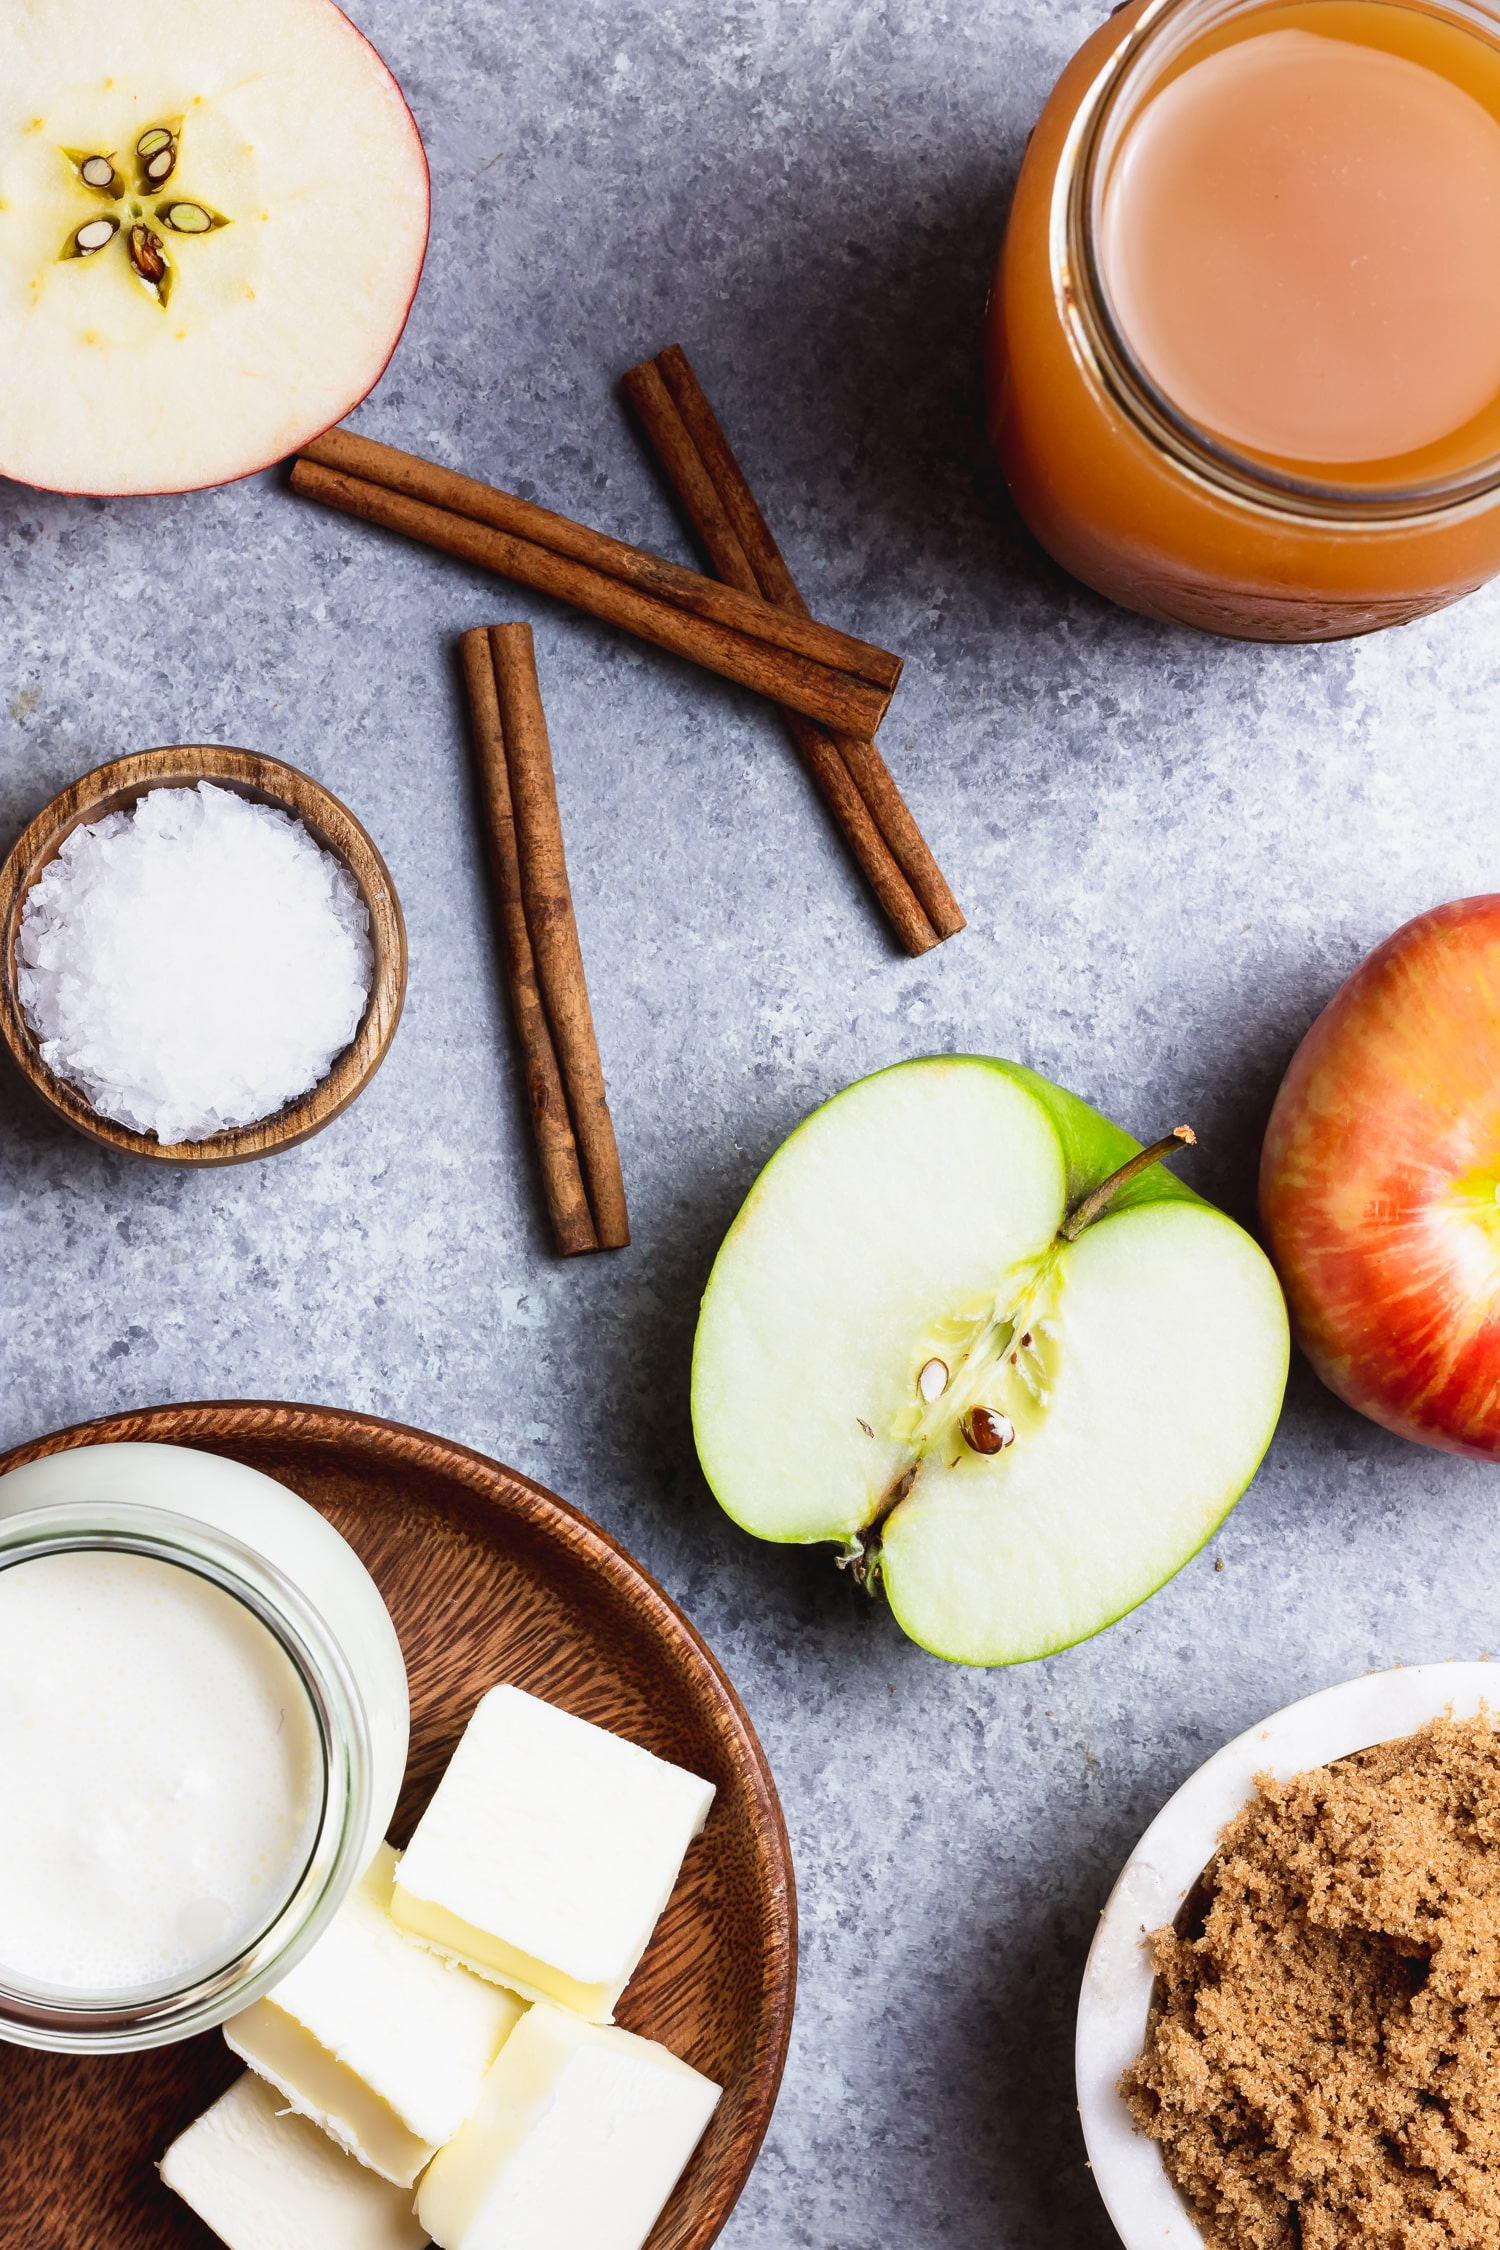 ingredients for apple cider caramel sauce